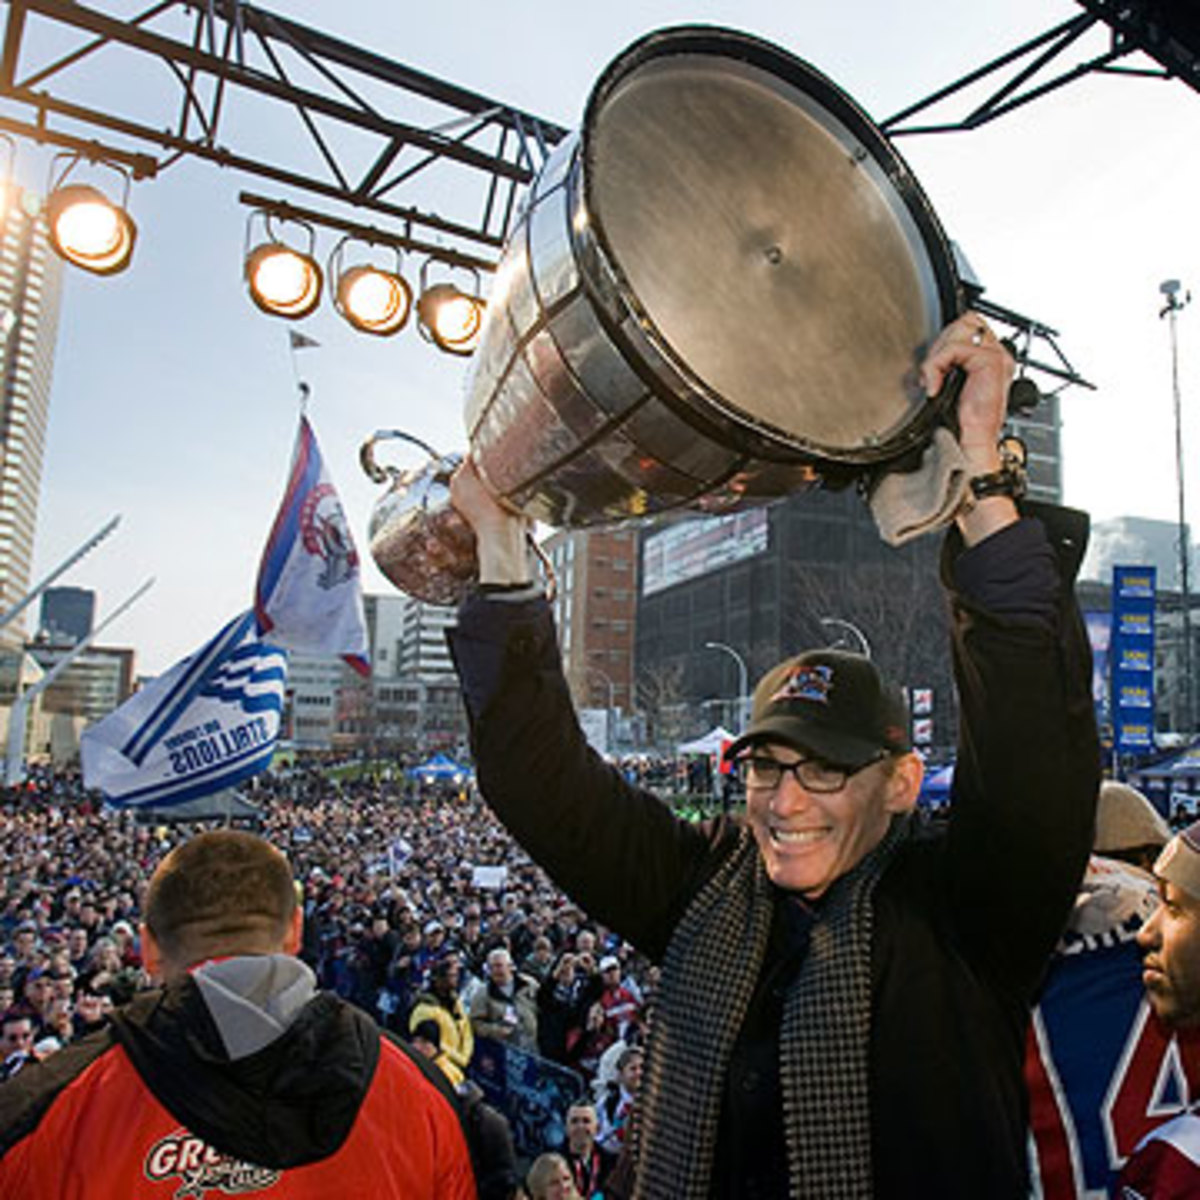 Trestman won two Grey Cup titles, including a dramatic, last-second victory in 2009. (Ryan Remiorz/The Canadian Press/AP)